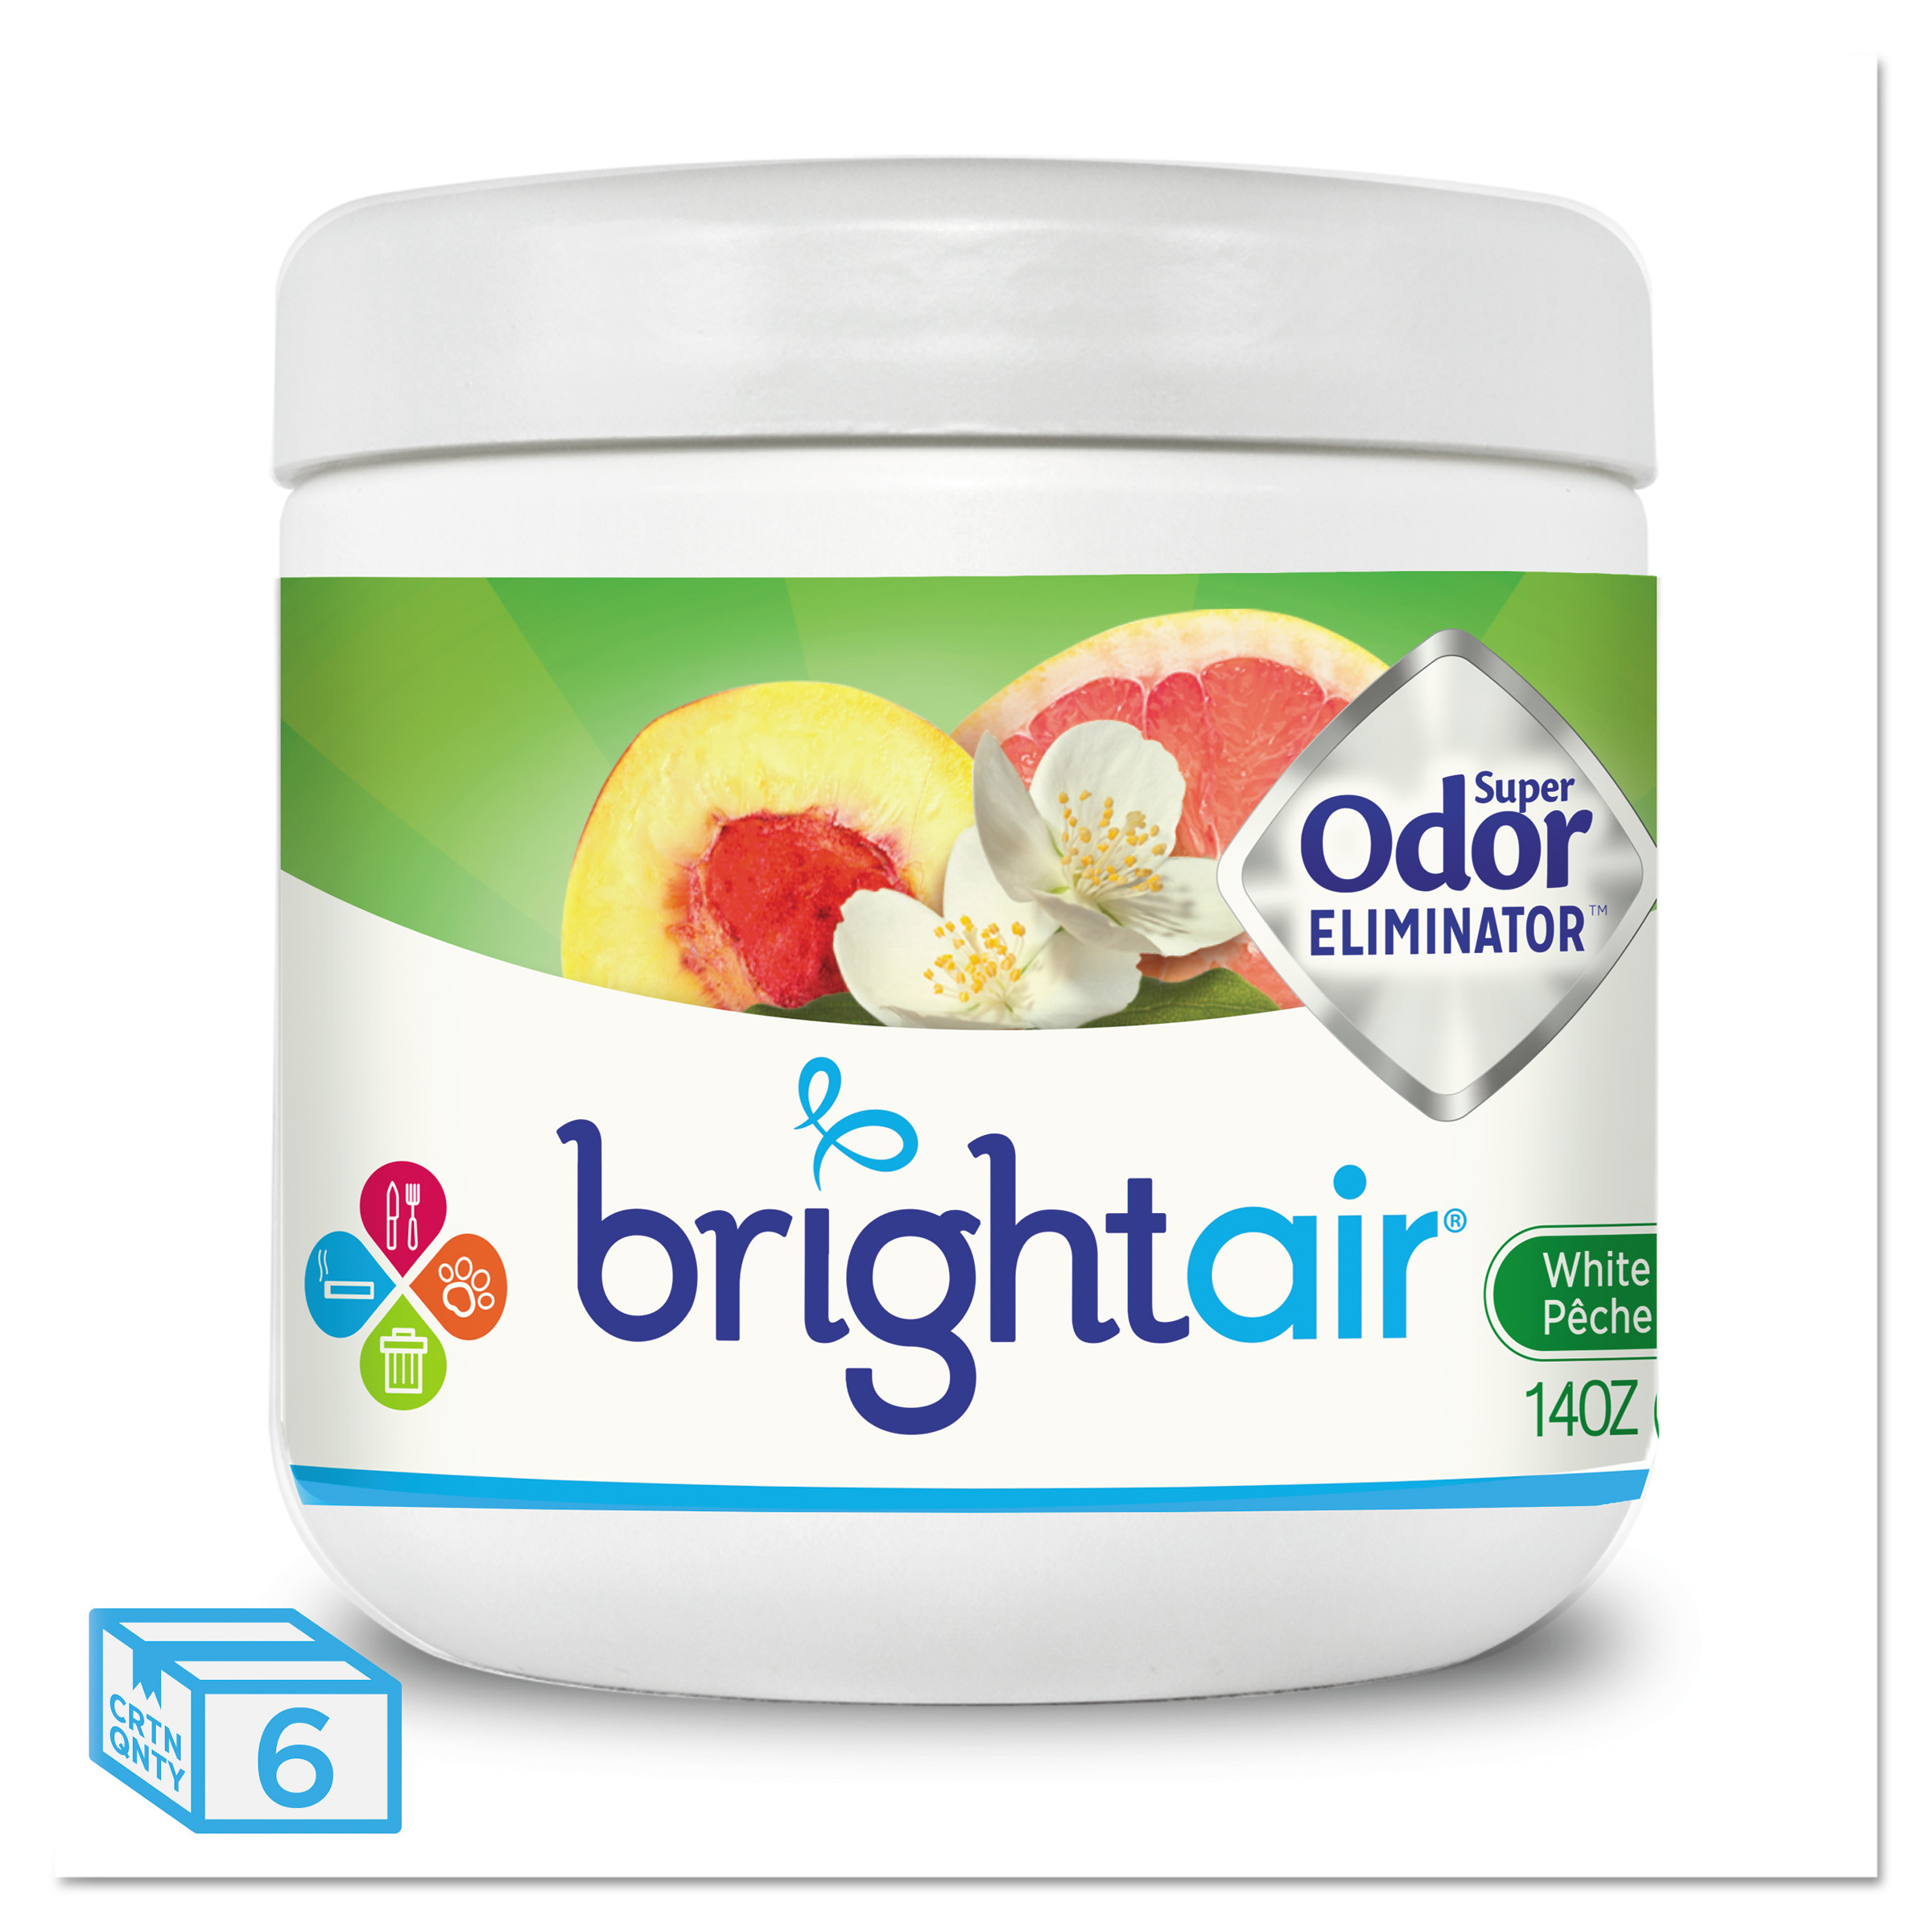 BRIGHT Air Super Odor Eliminator, White Peach and Citrus, 14oz,